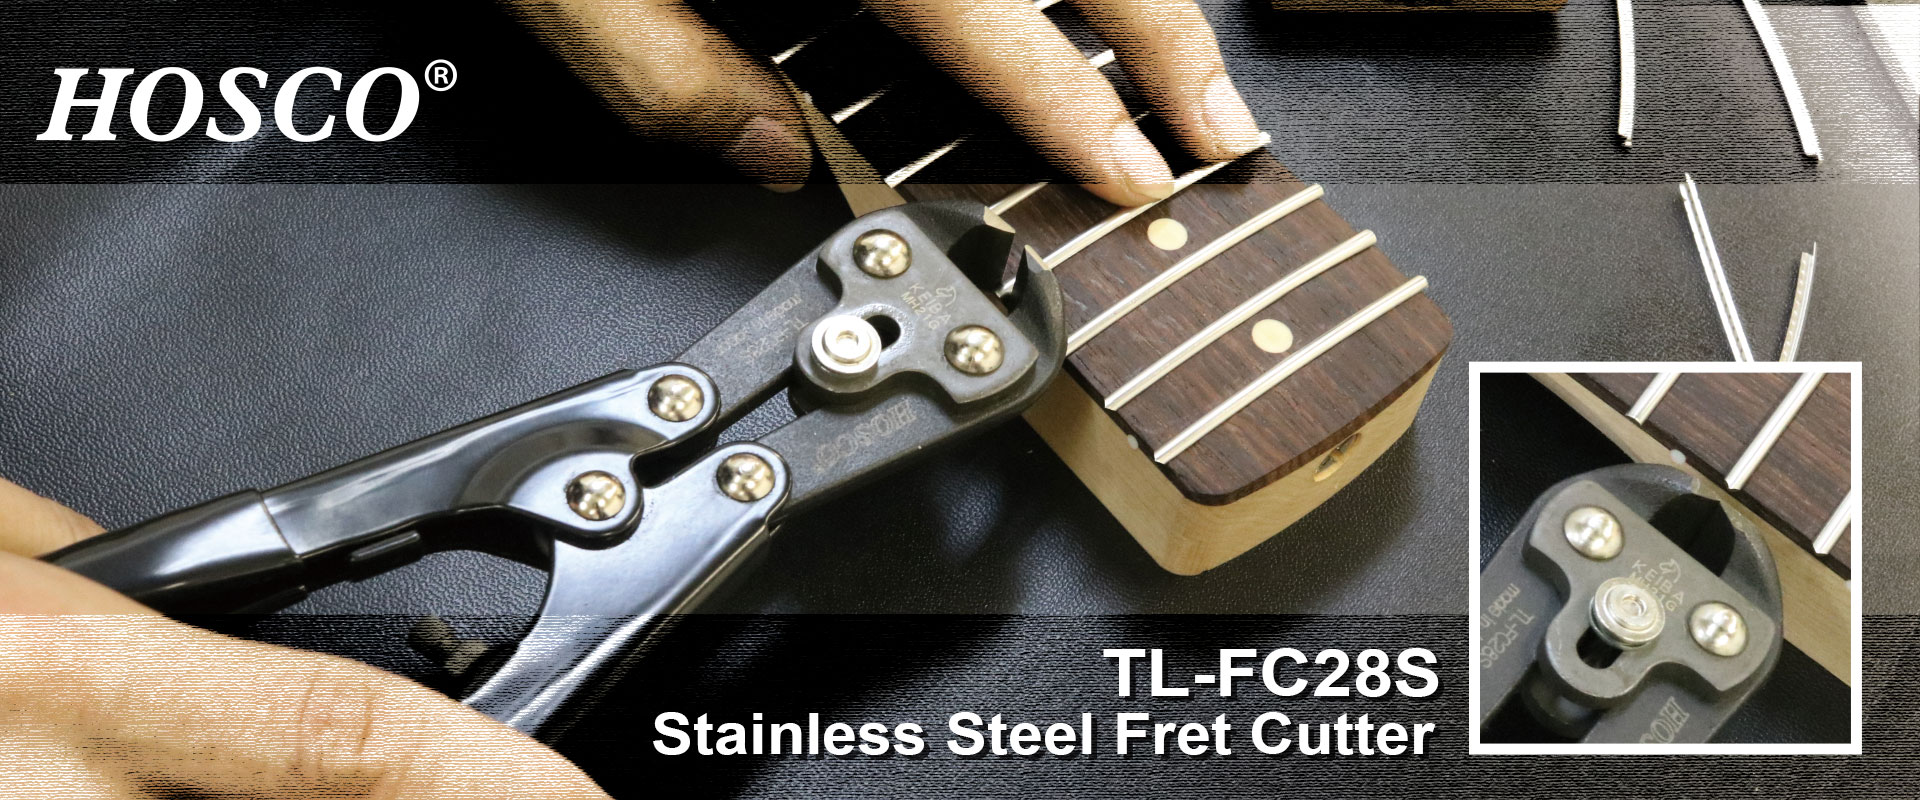 Stainless Steel Fret Cutter